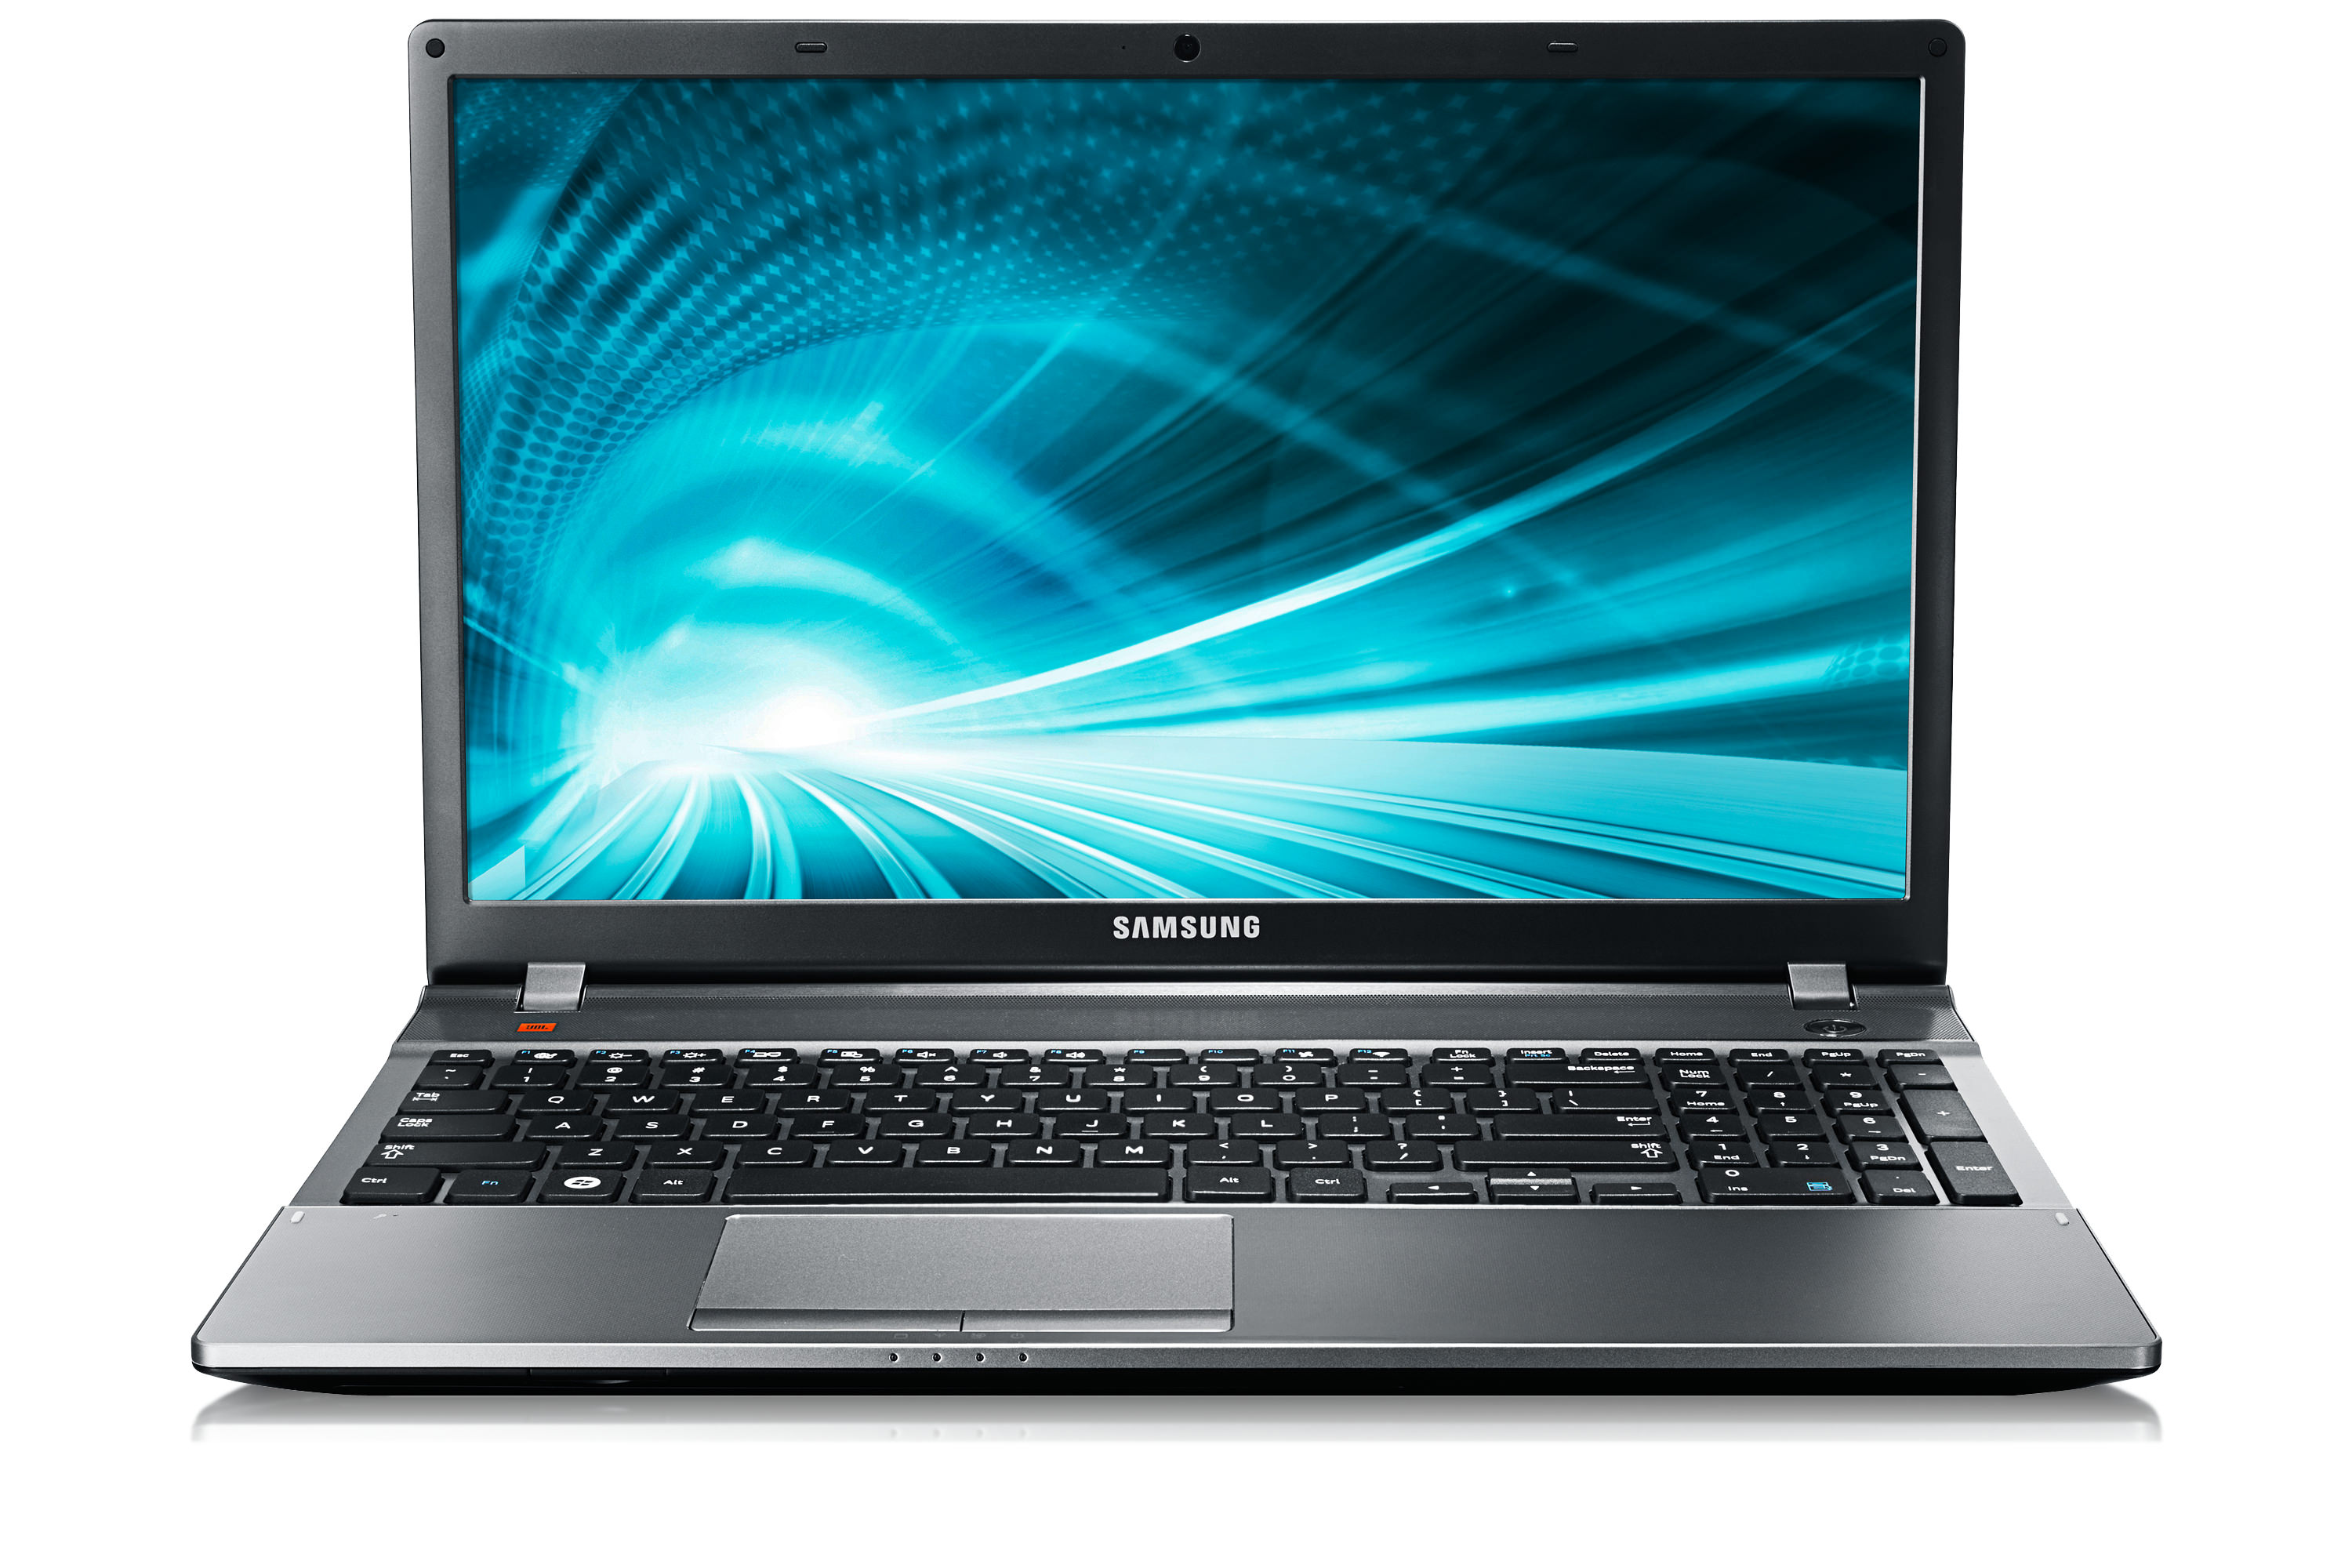 Samsung Series 5 NP550P5C-S06IN Laptop (Core i5 3rd Gen/6 GB/1 TB/Windows 8/2 GB) Price